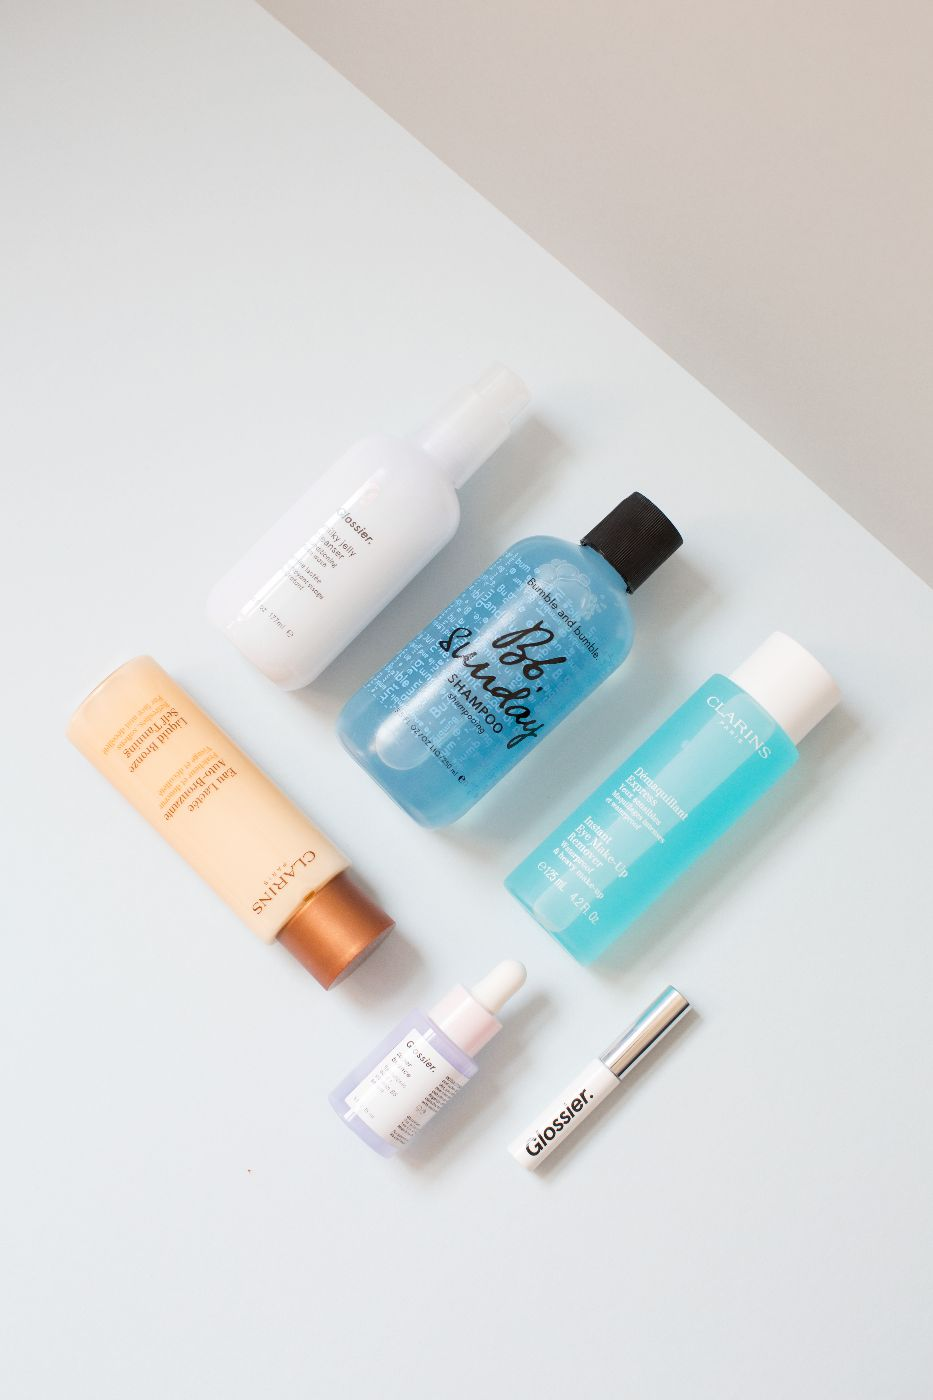 theannaedit-beauty-repurchases-glossier-clarins-bumbleandbumble-june-2017-2